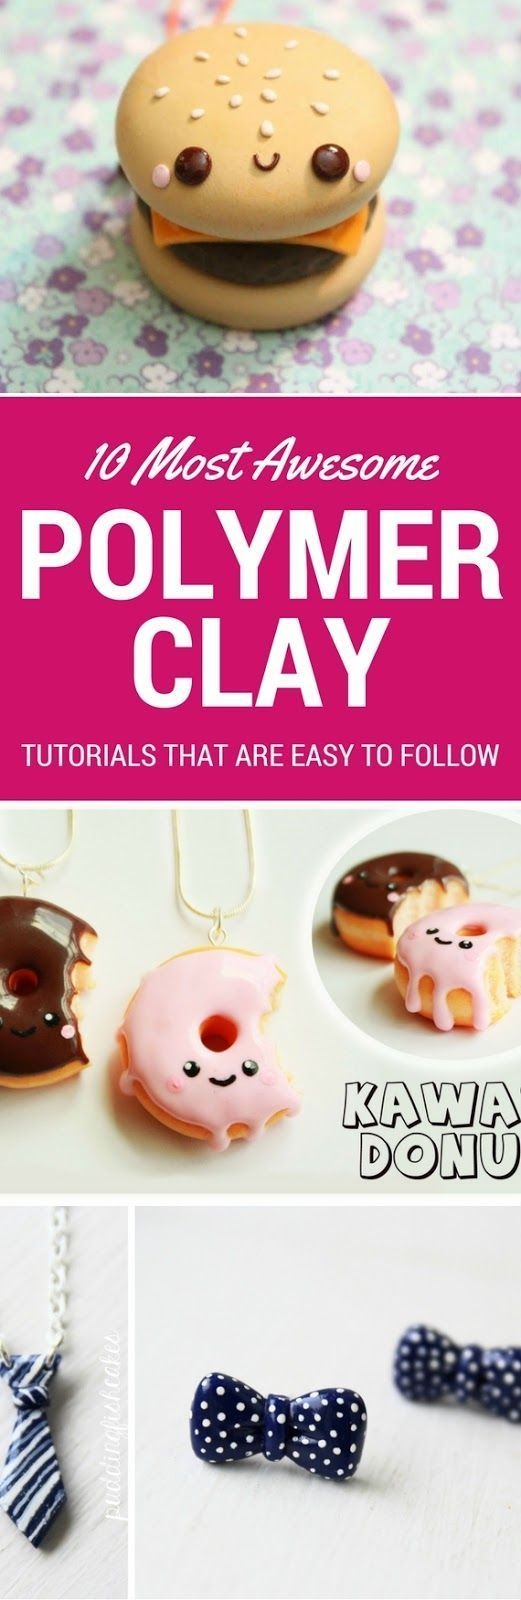 10 Polymer Clay Tutorials Step By Step Anyone Can Follow - Looking for a fun DIY Craft Project? Then you totally have to try making these Polymer Clay Charms! They are so AWESOME.